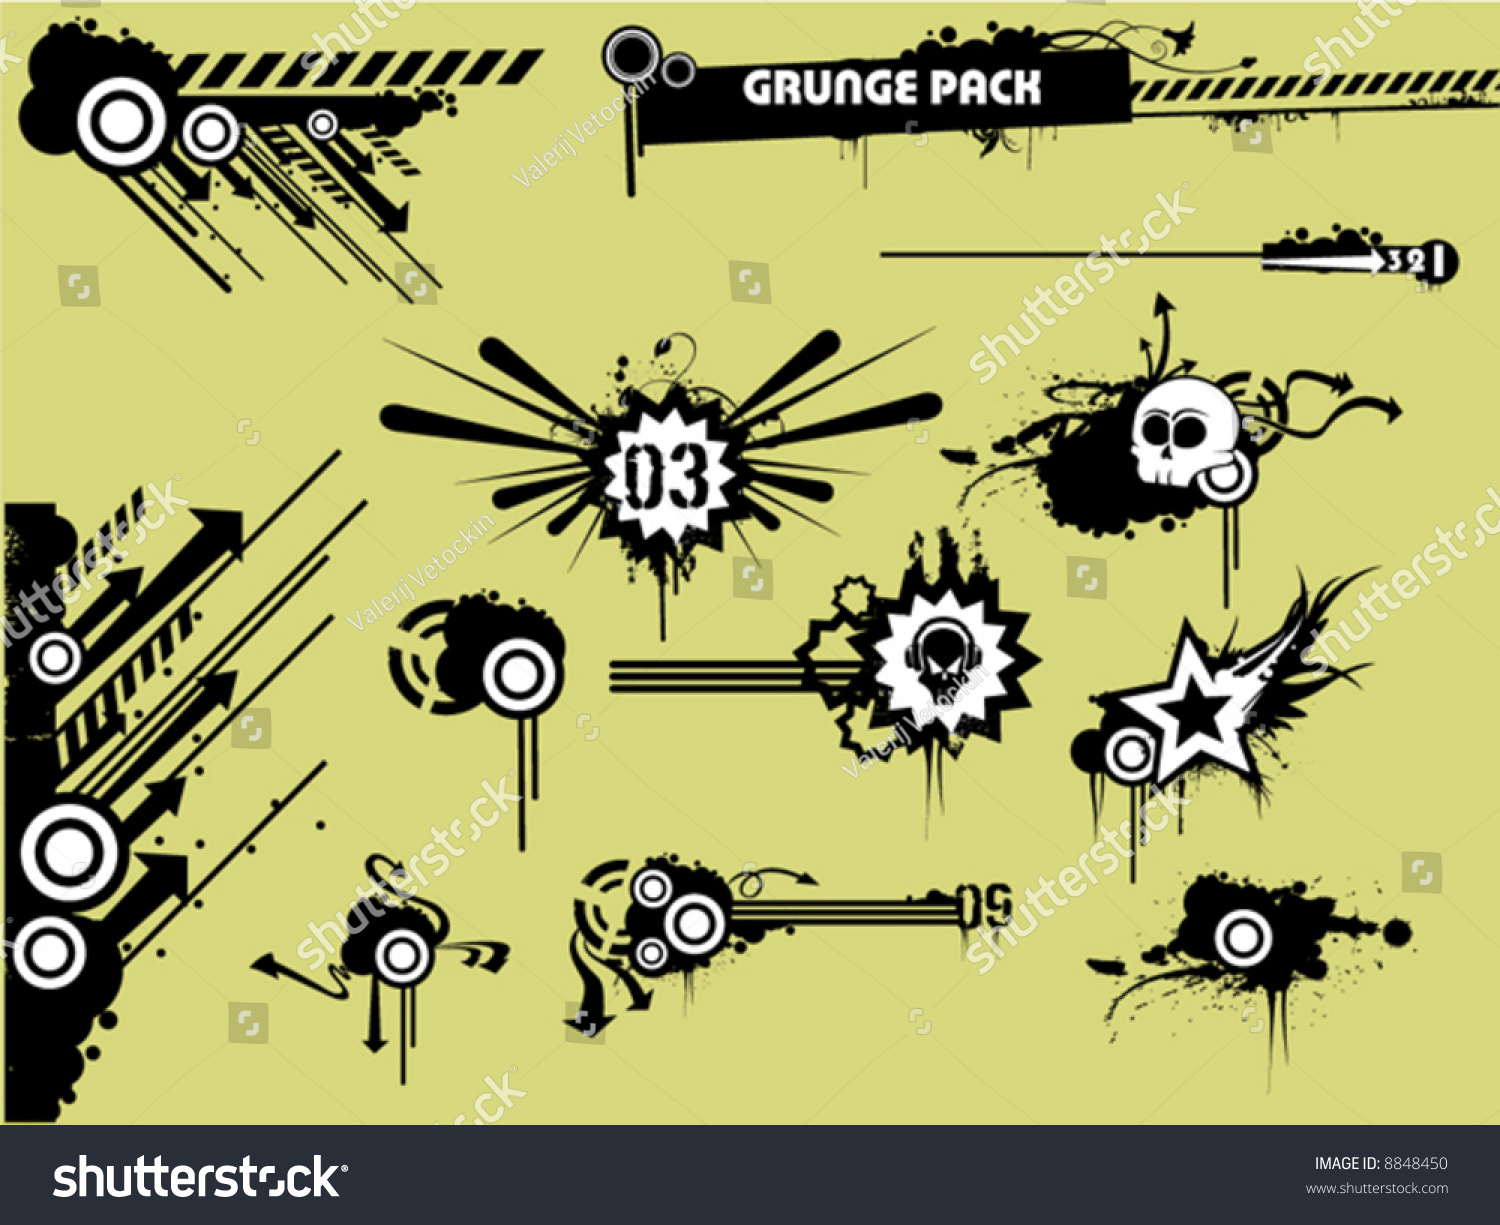 hight resolution of grunge clipart pack